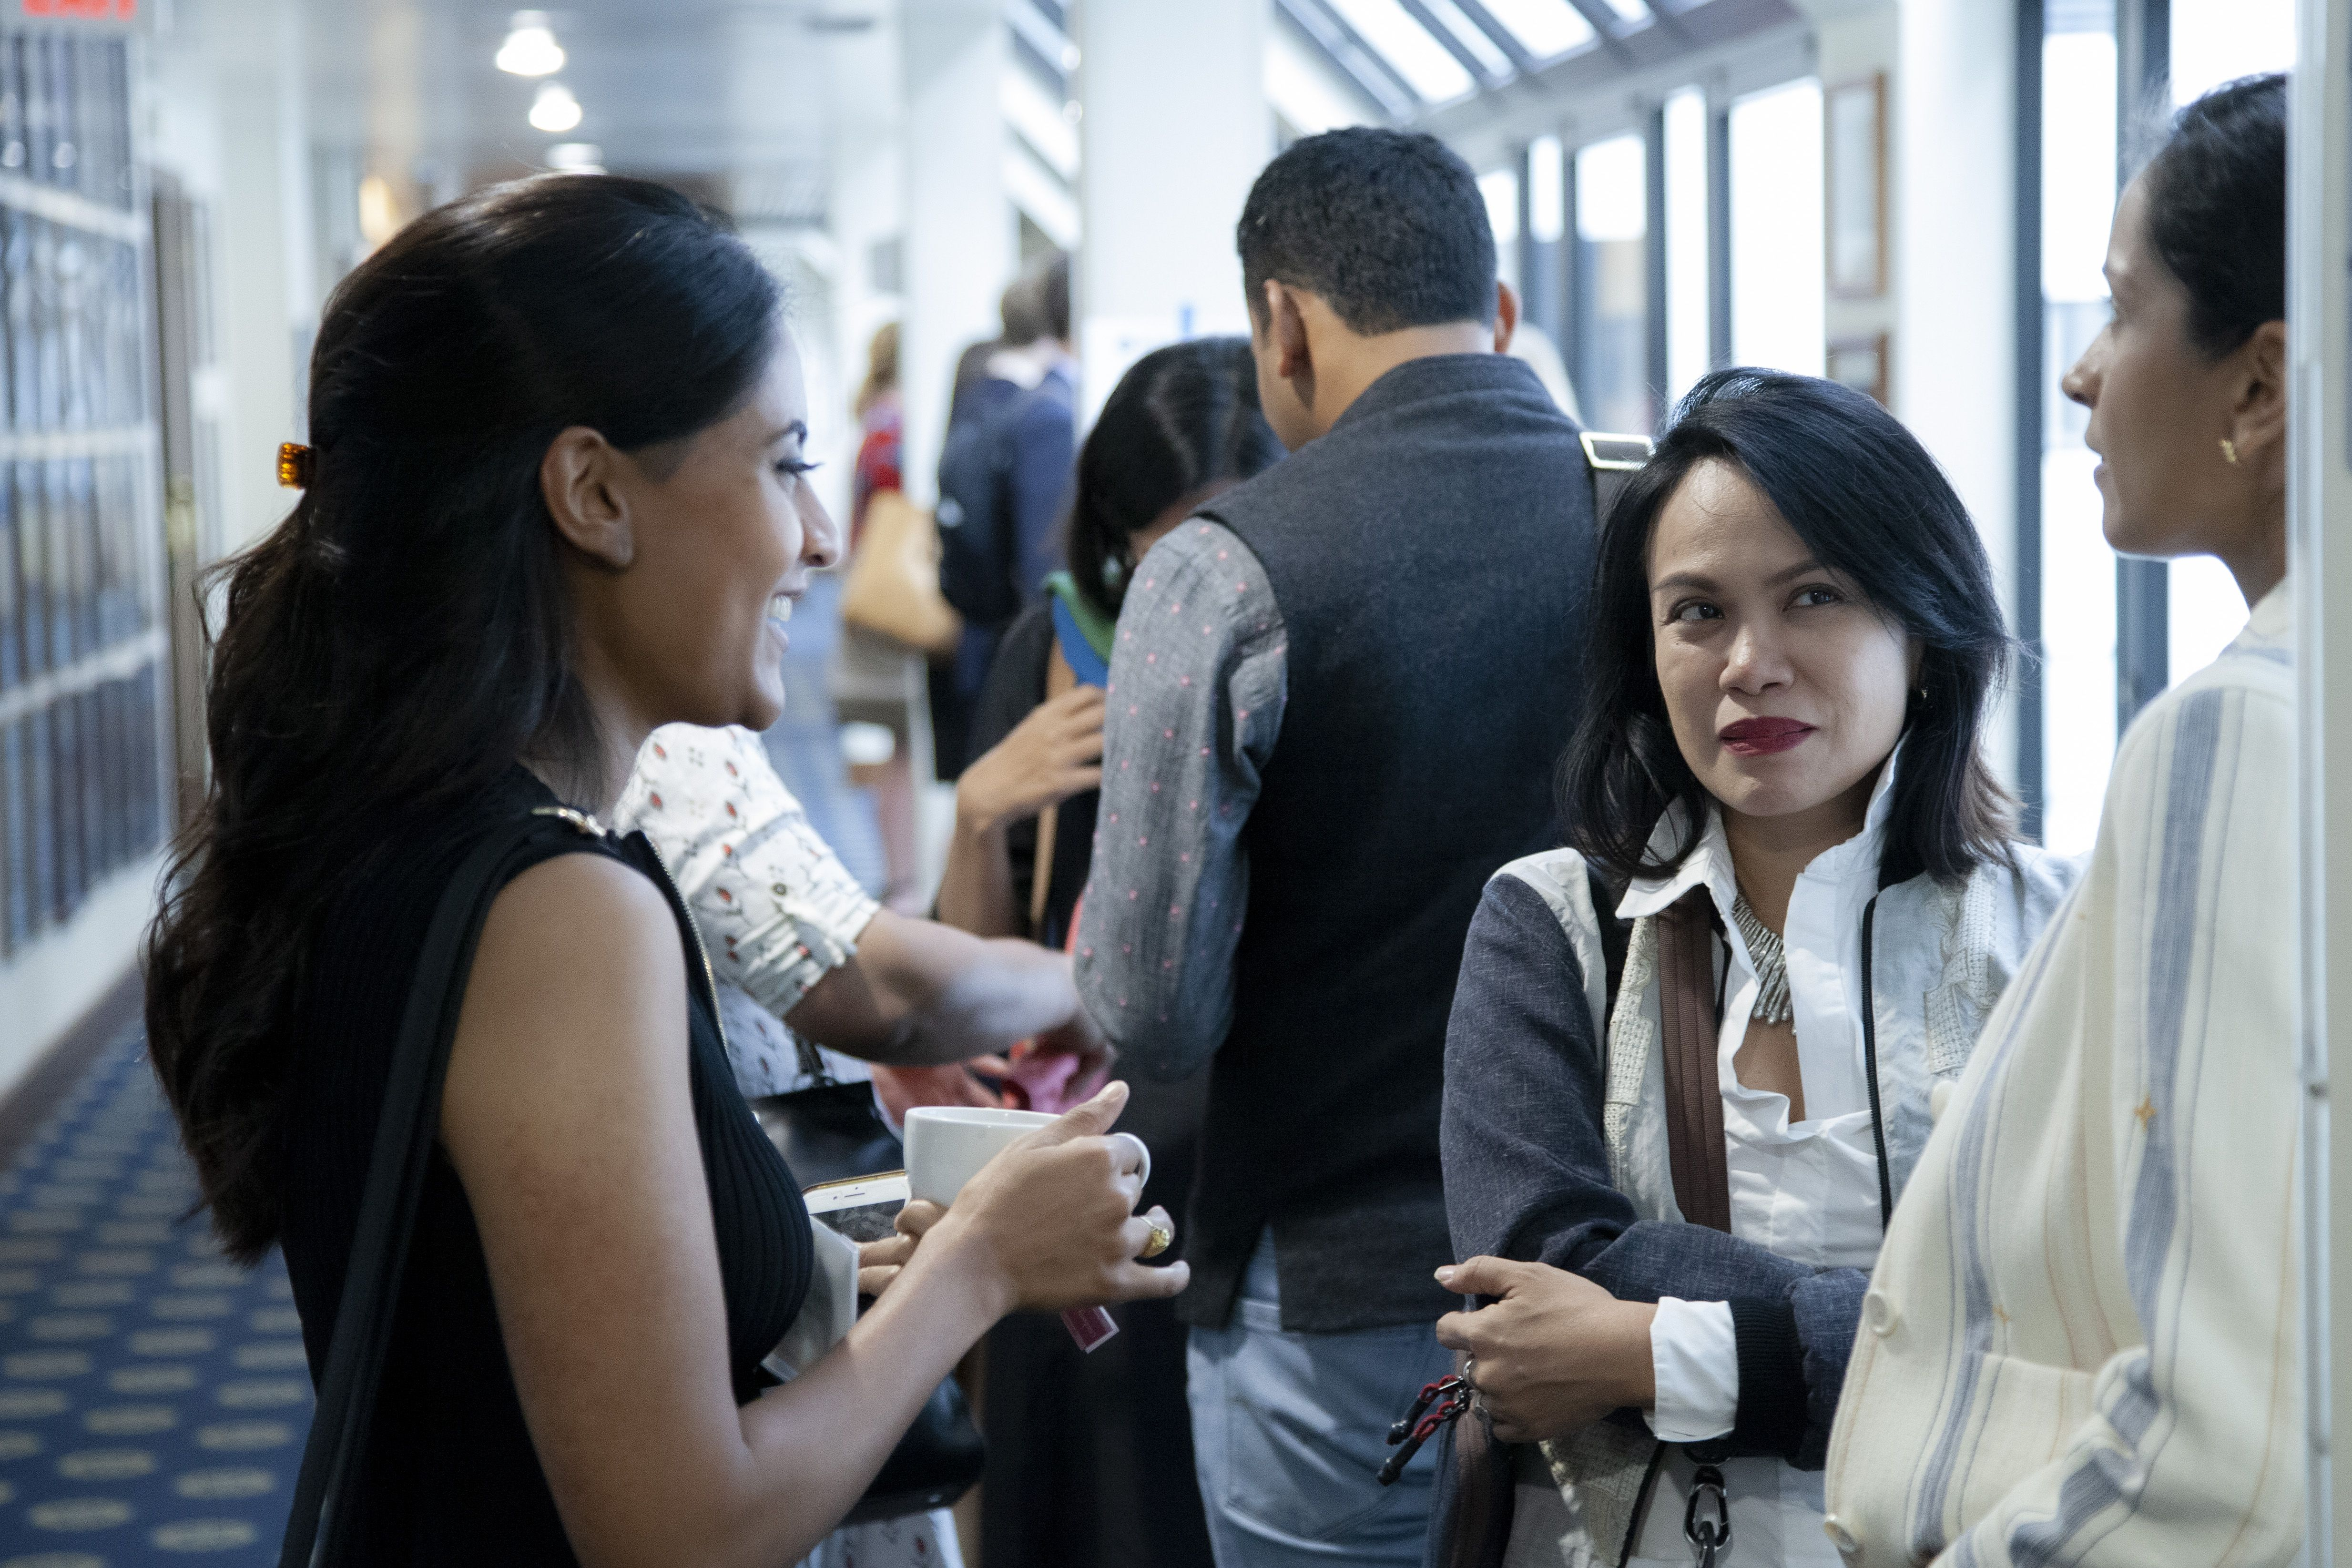 In between panels, journalist grantees Ana Santos (center) and Krithika Varagur (left) chat over coffee with journalist grantee Sushma Subramanian. Image by Jin Ding. United States, 2019.